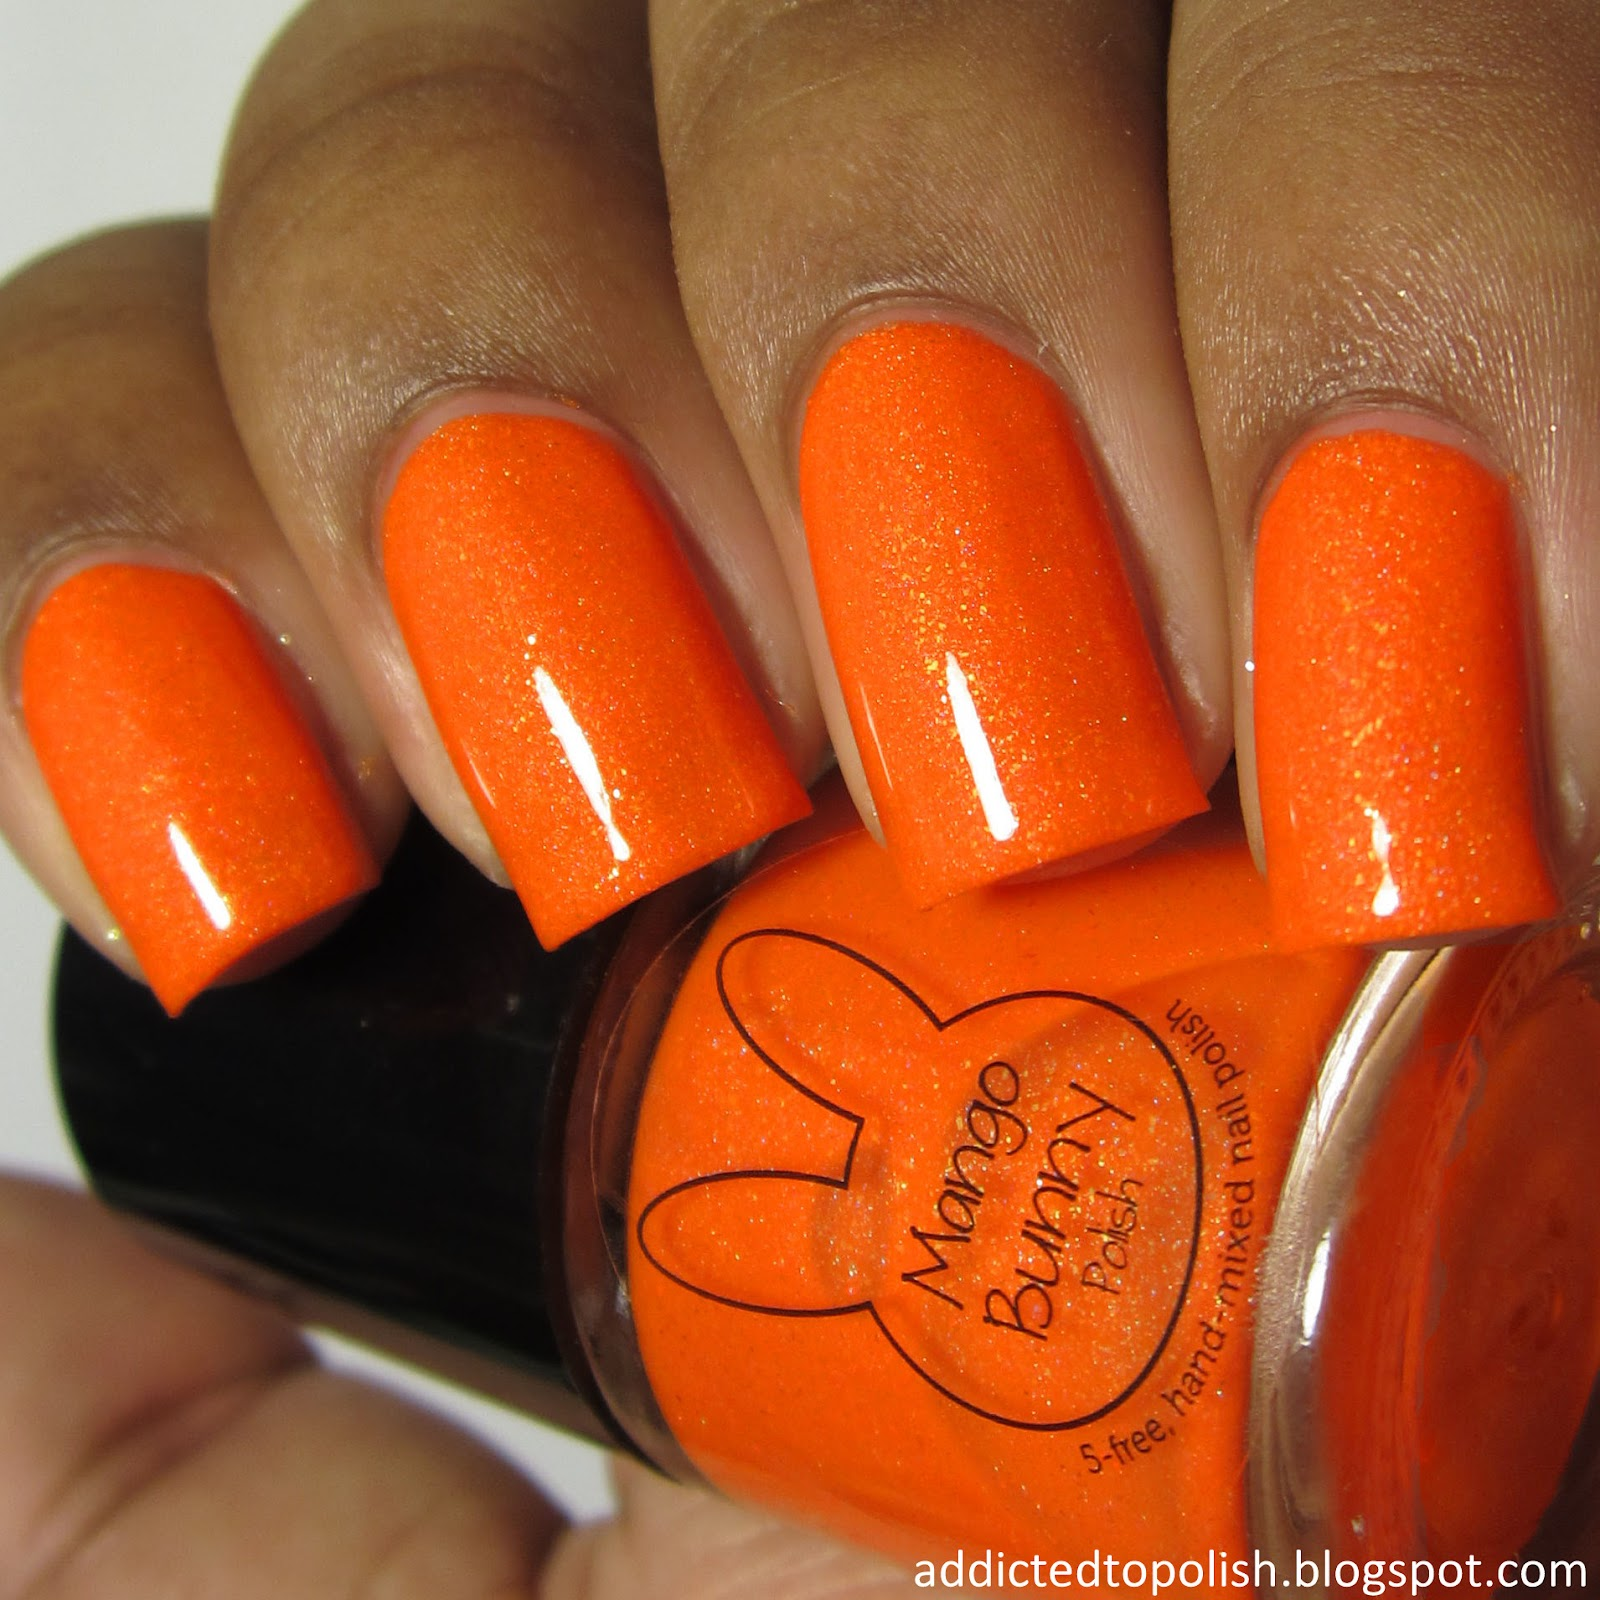 mango bunny polish come to papapya sunkissed neons